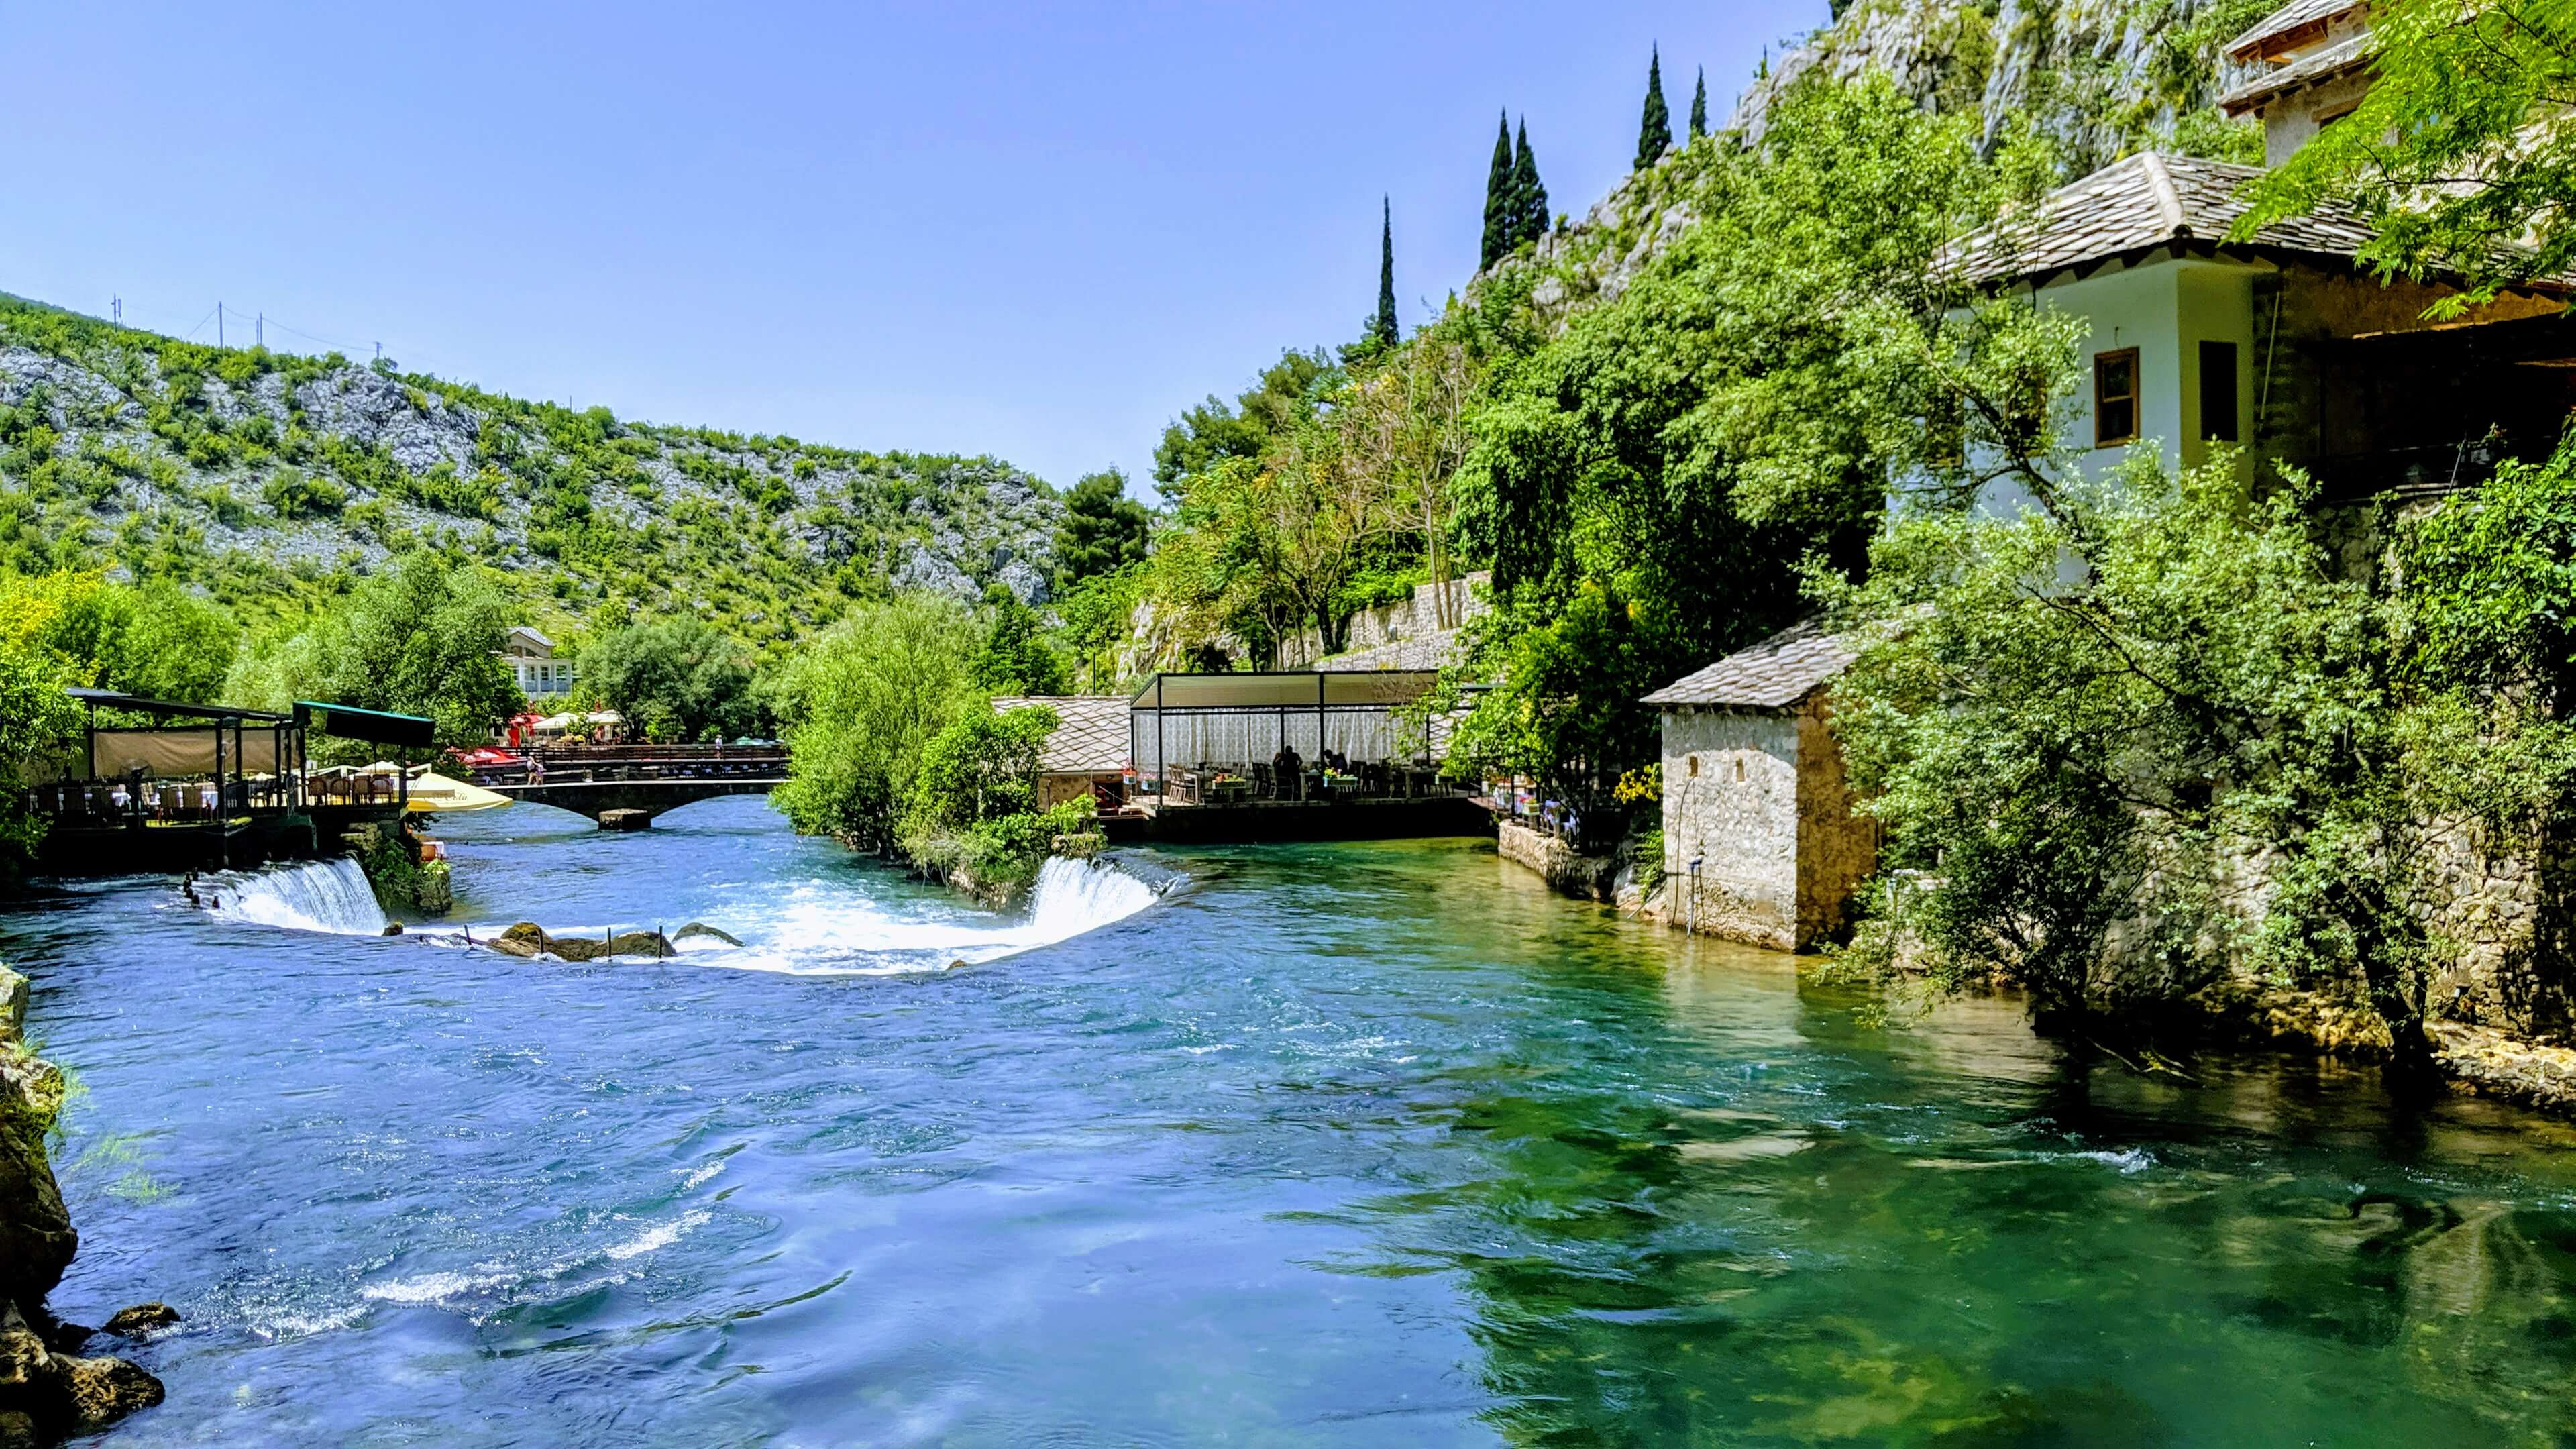 Blagaj Tekija Monastery on the Buna river is a stunning place that we urge you to visit.